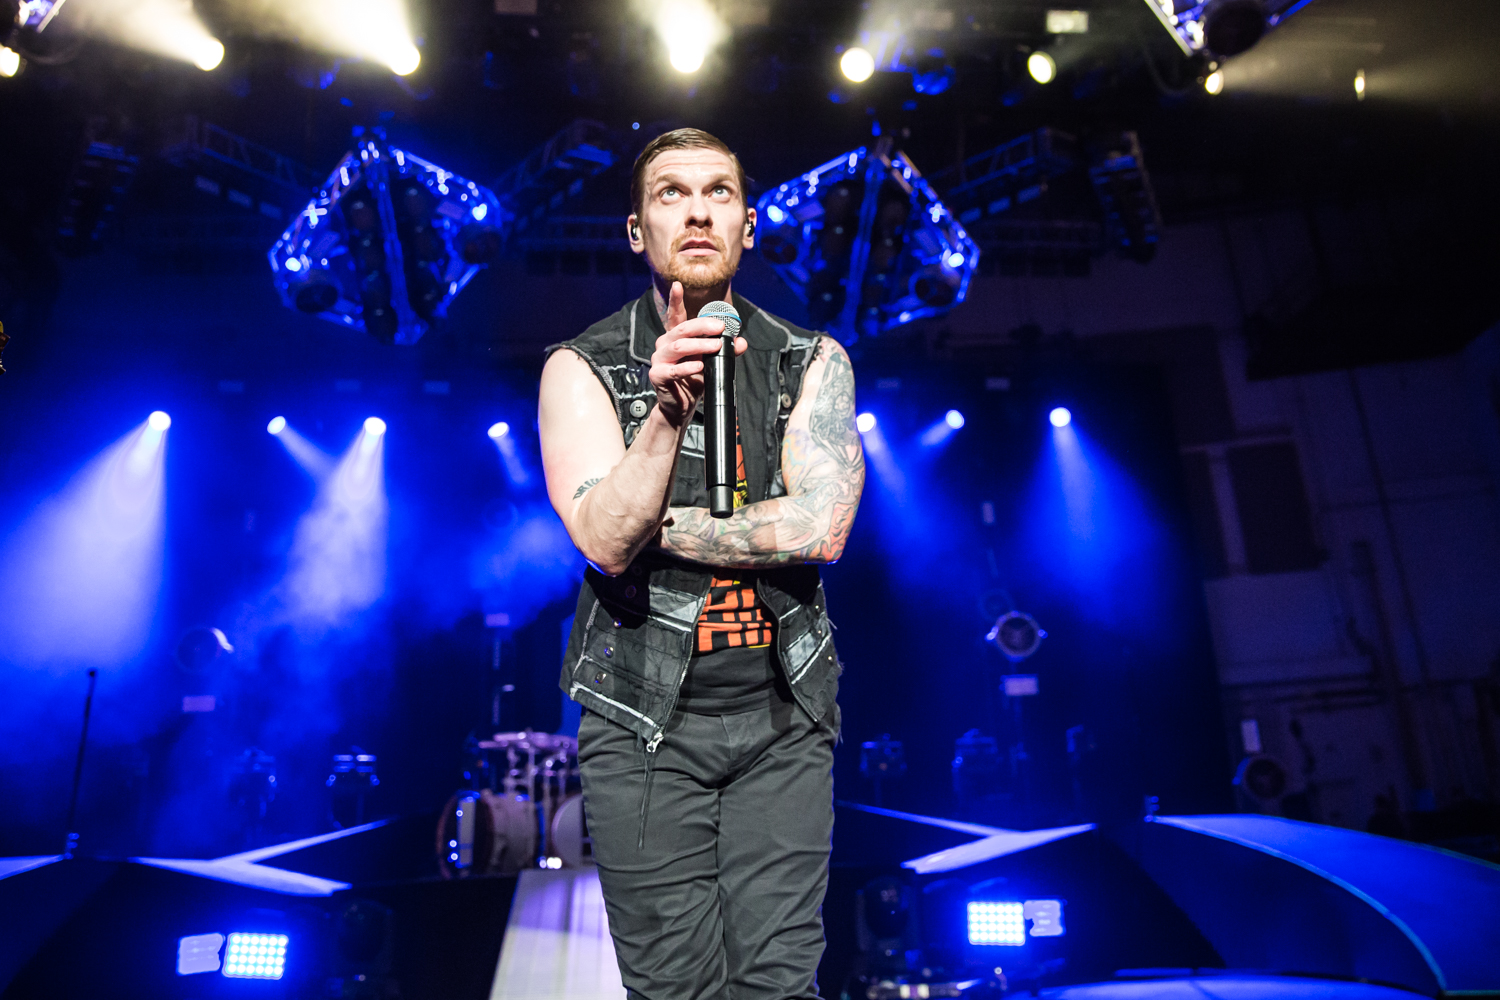 Shinedown's Brent Smith, photo by Joe Russo